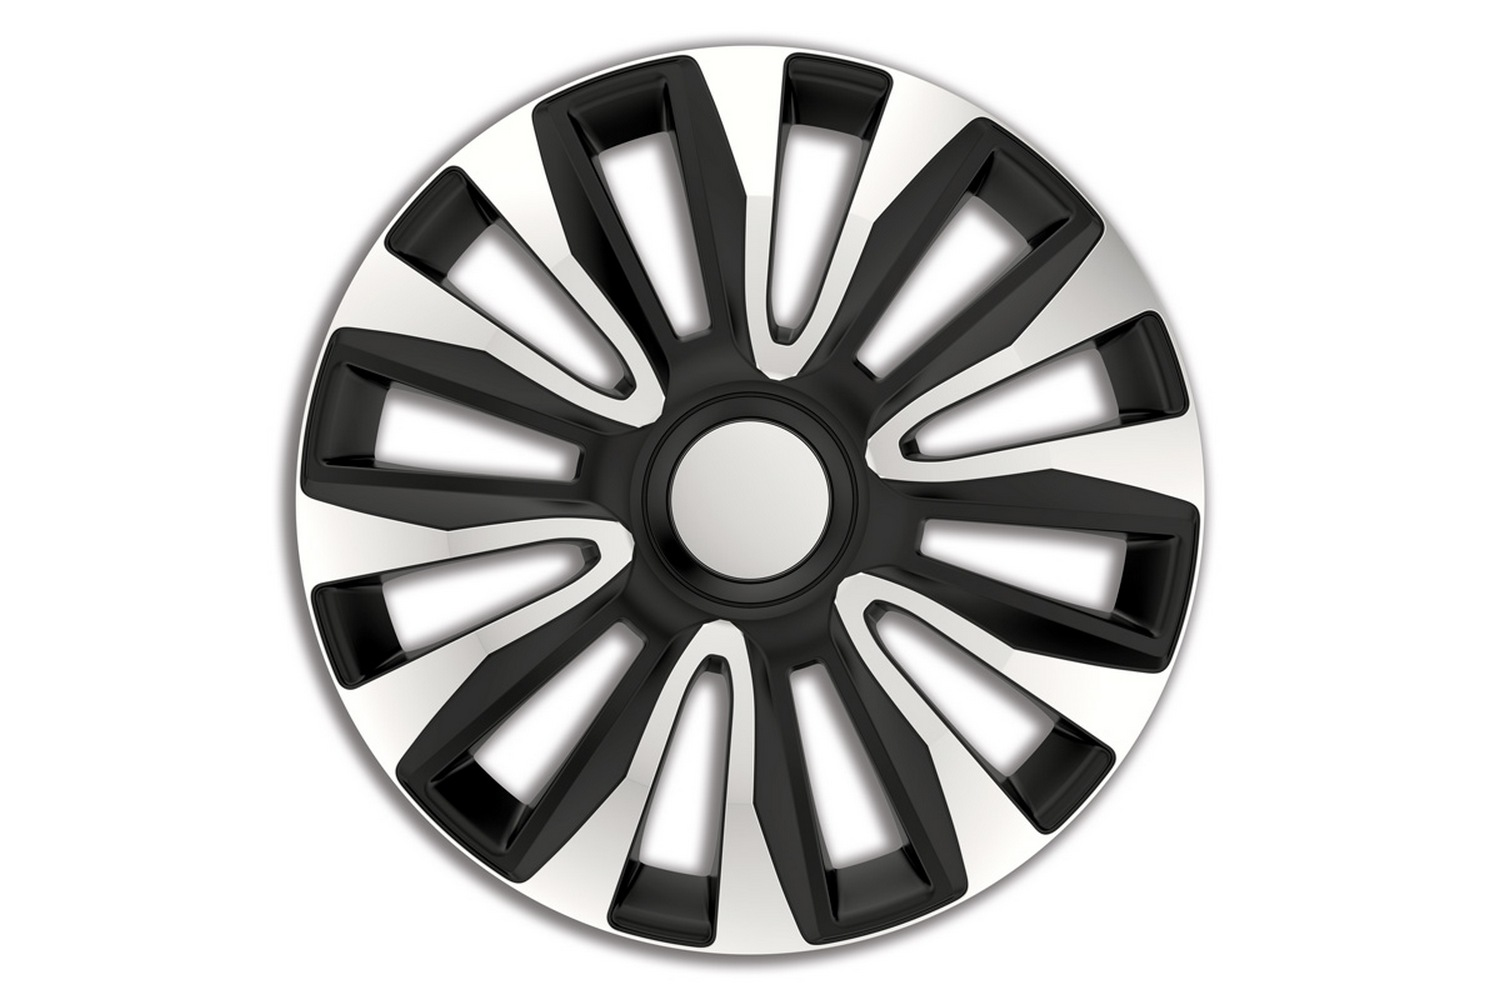 Wheel covers Avalone 15 inch set 4 pieces